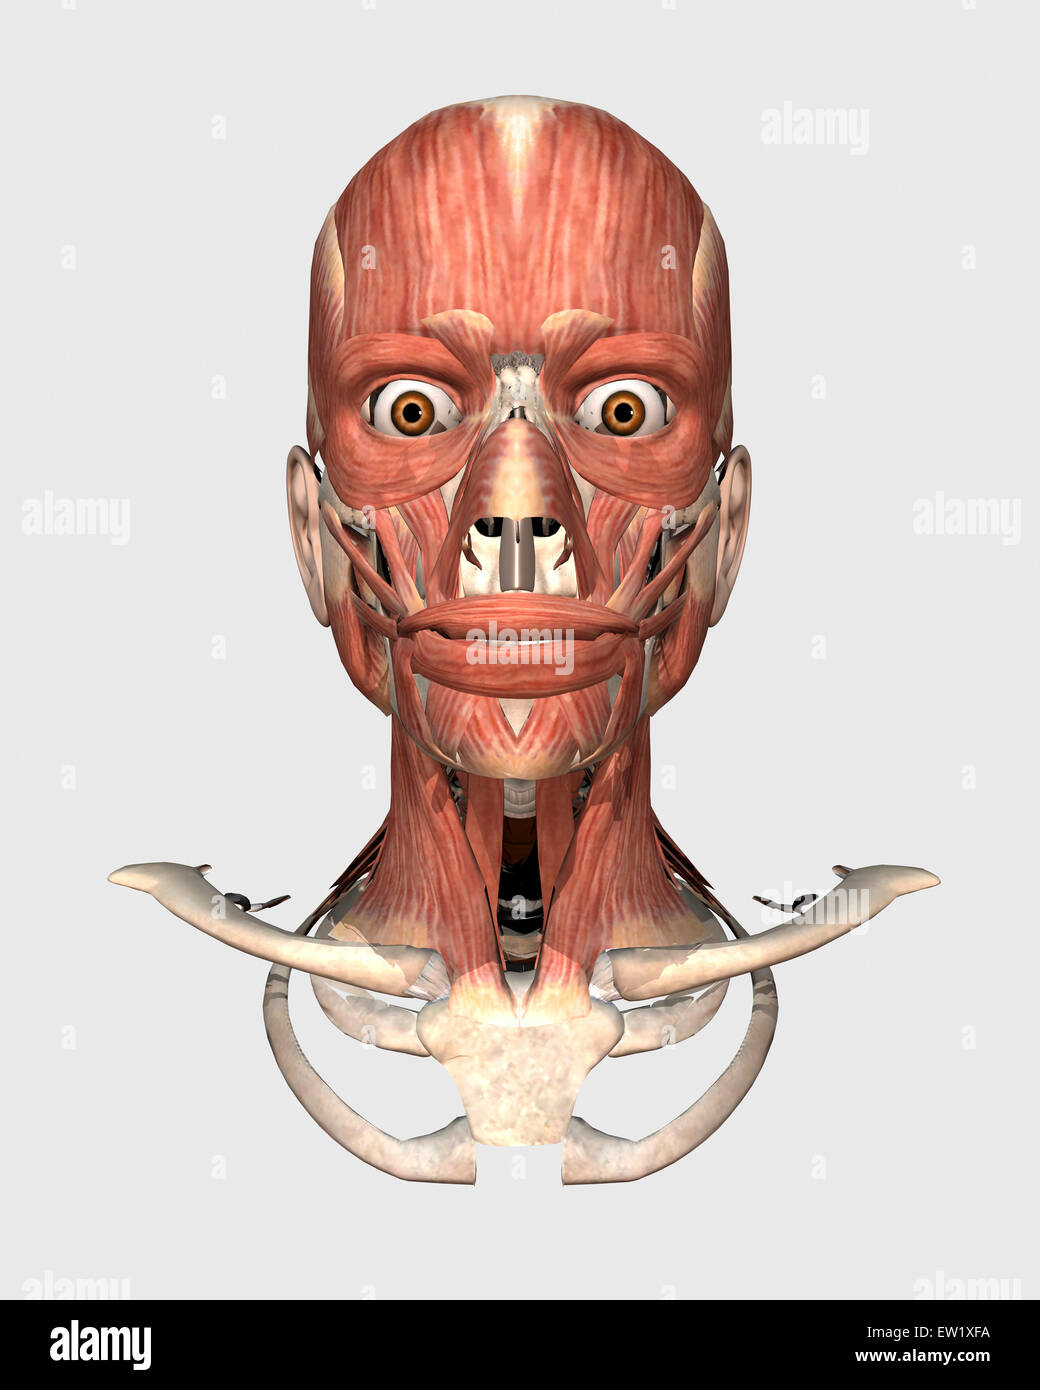 Human head showing bone and muscles. Stock Photo